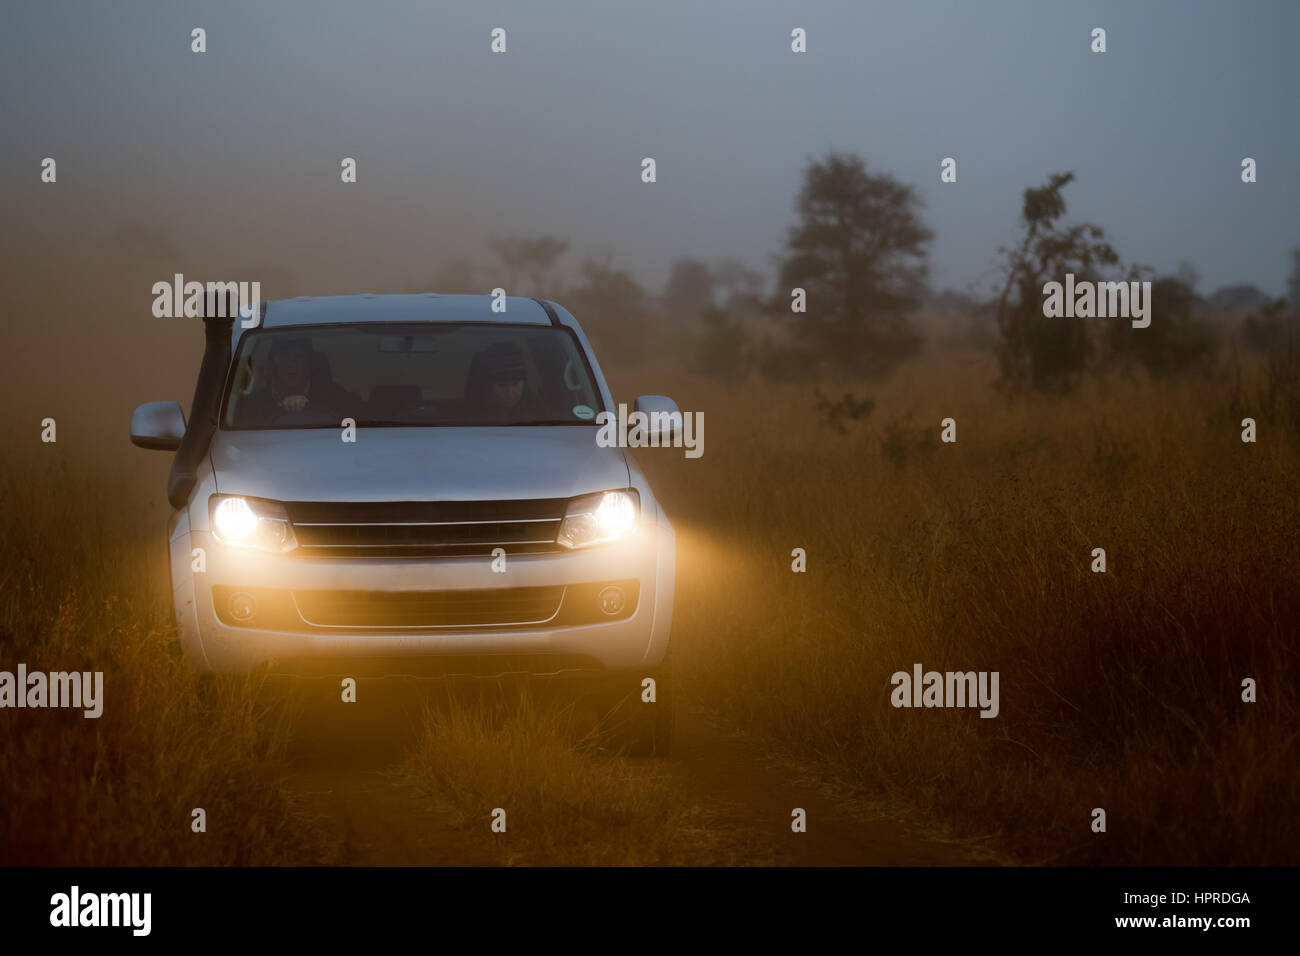 A truck explores Kruger National Park, South Africa on an early morning game drive in search of safari animals. - Stock Image